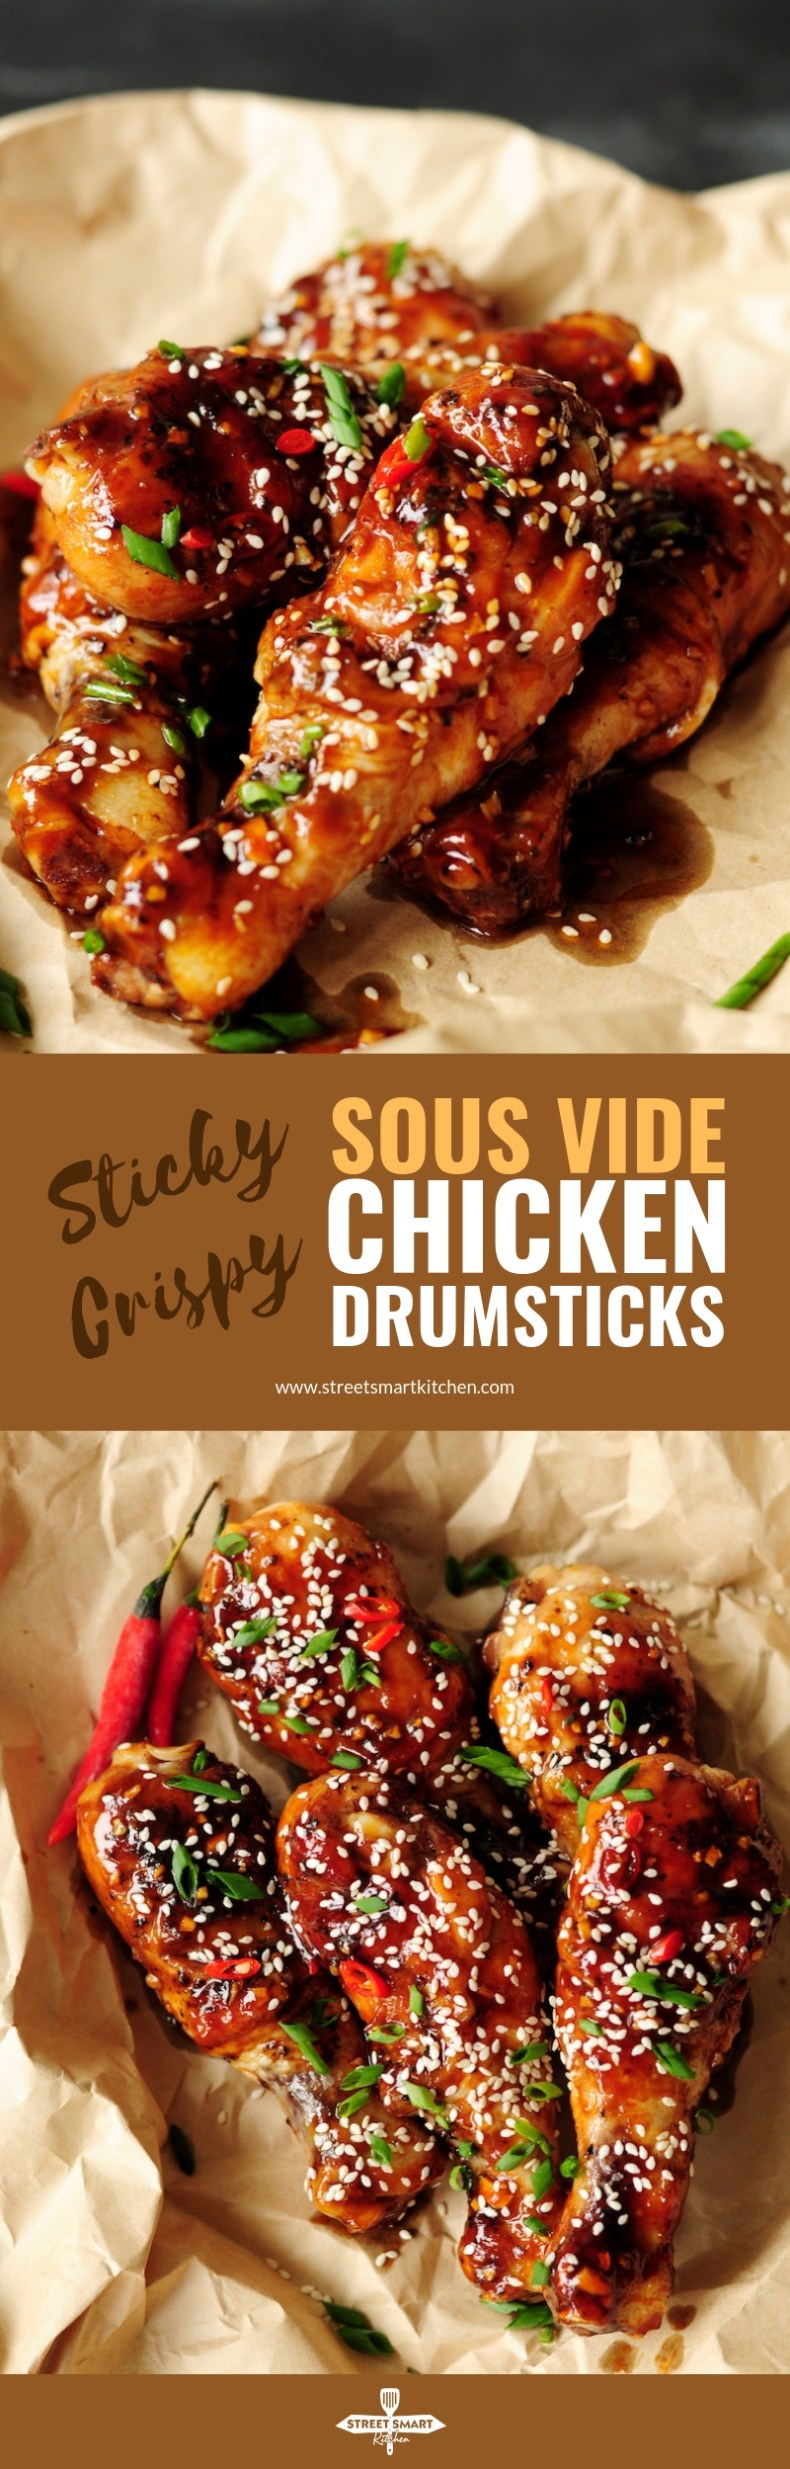 These Chinese-inspired sous vide chicken drumsticks are addictive in their own right, with each bite of tender, juicy meat and crispy skin.